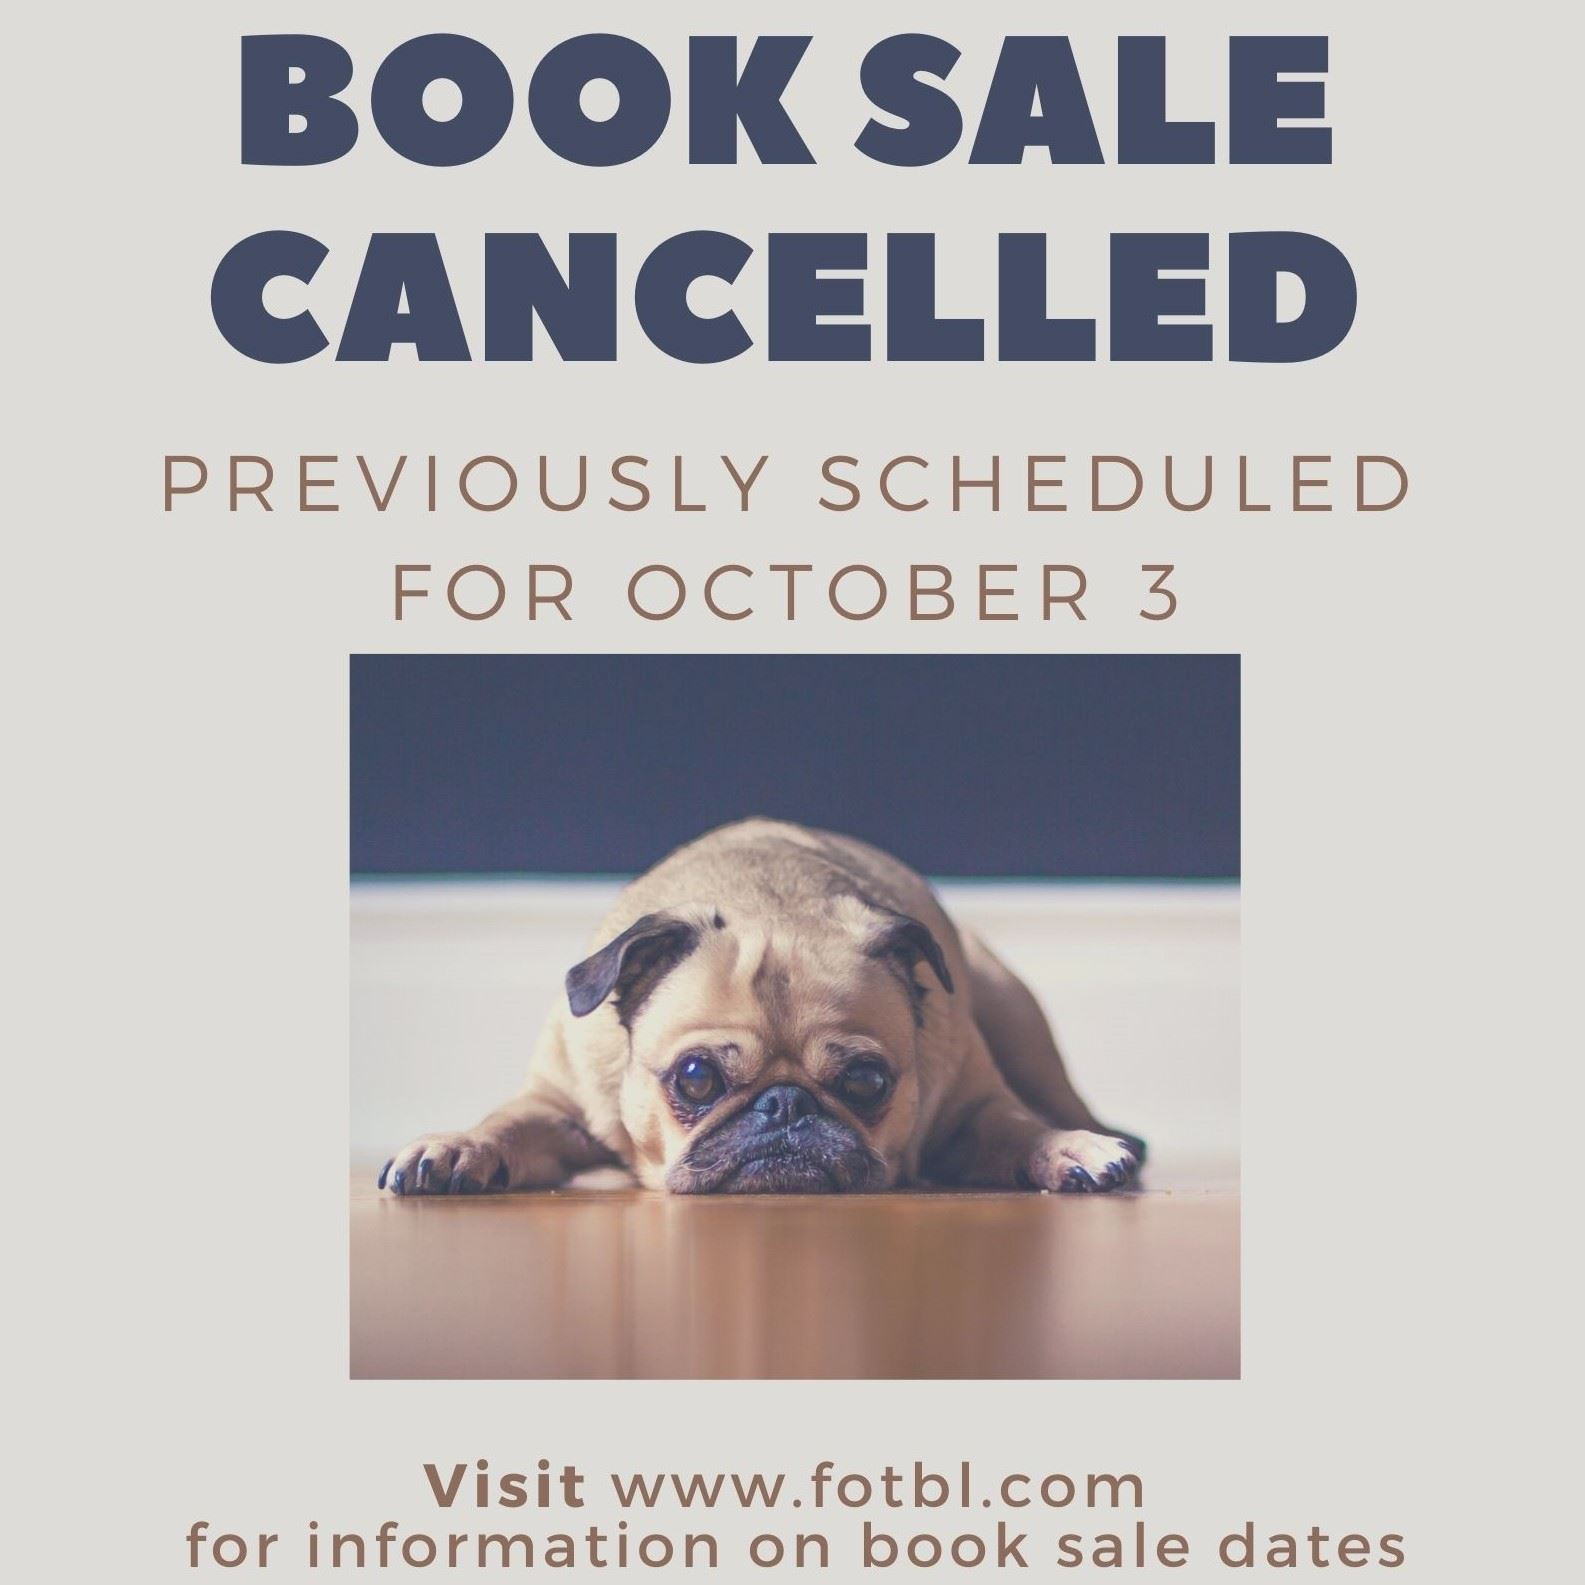 Book sale cancelled square